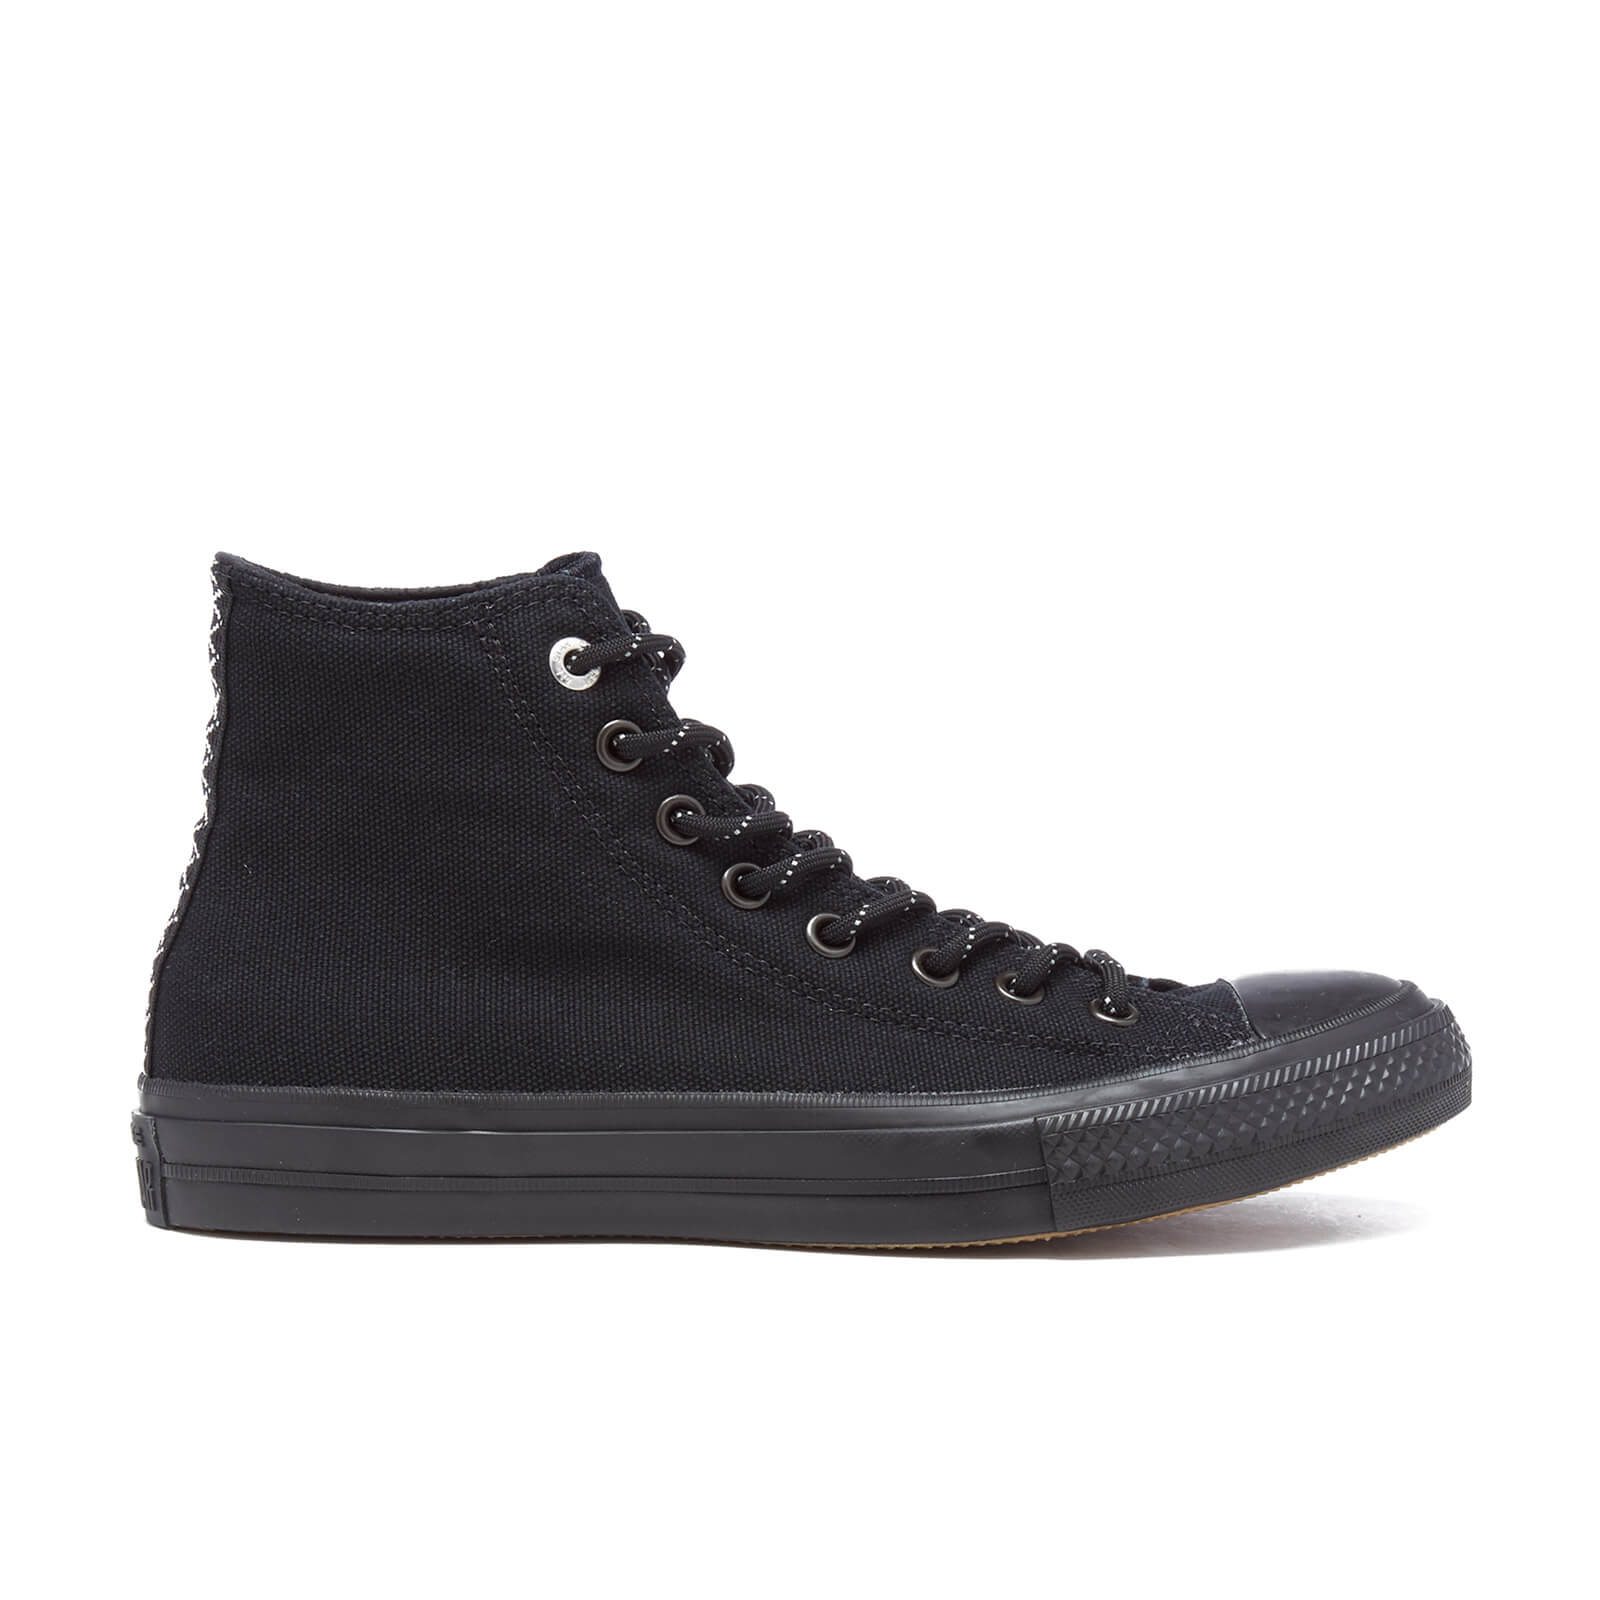 641f7b3efd00 Converse Men s Chuck Taylor All Star II Shield Canvas Hi-Top Trainers -  Black Gum - Free UK Delivery over £50